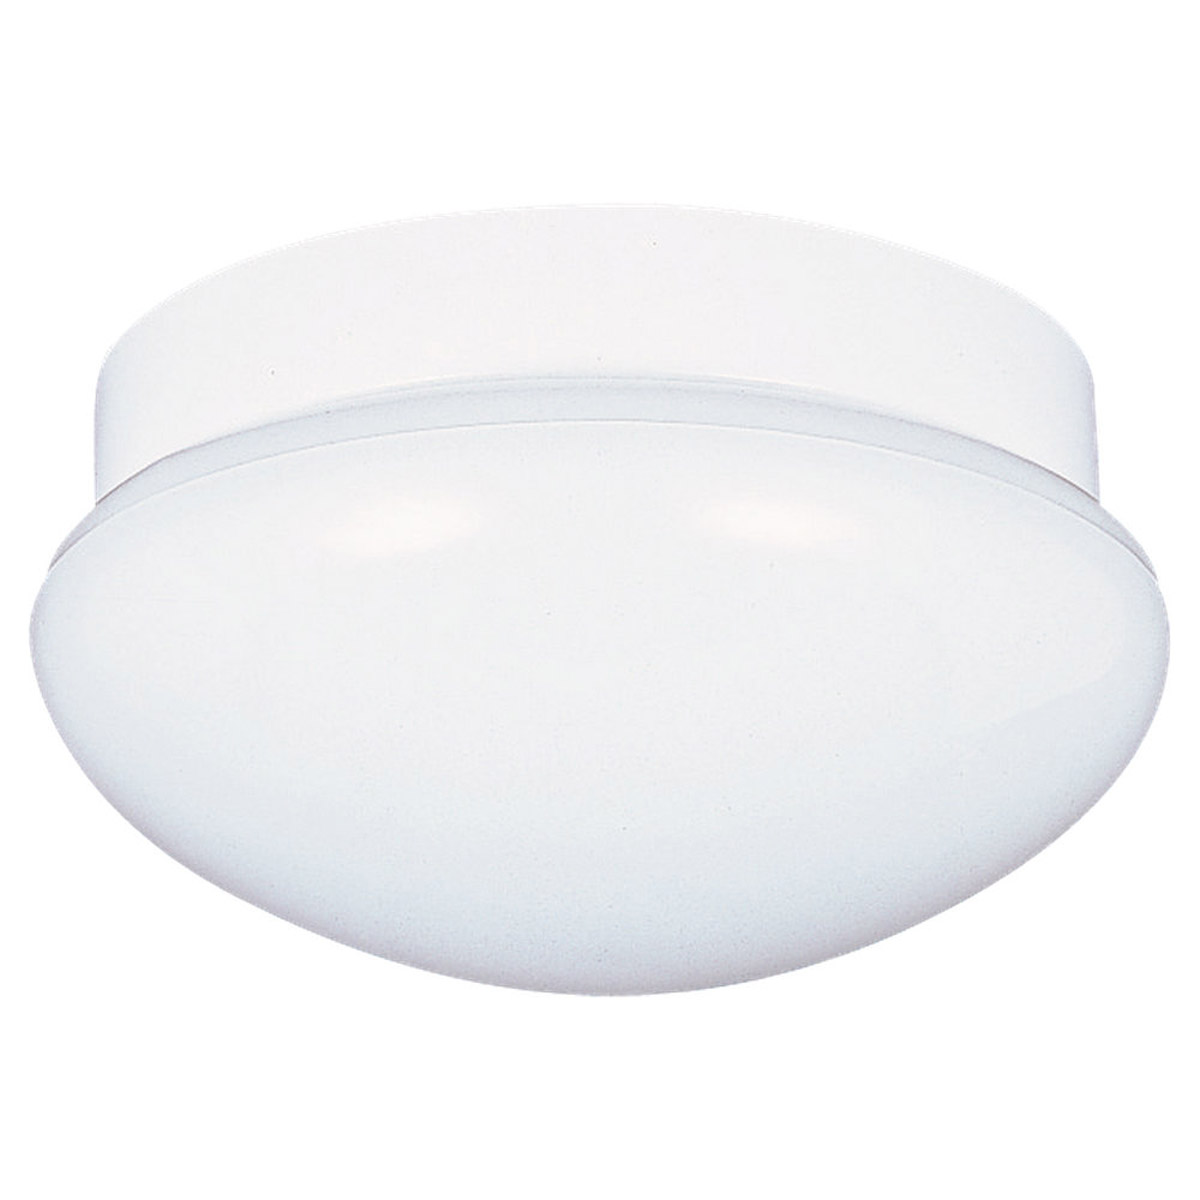 Sea Gull Lighting Flush Mount 3 Light Flush Mount in White 7640-15 photo